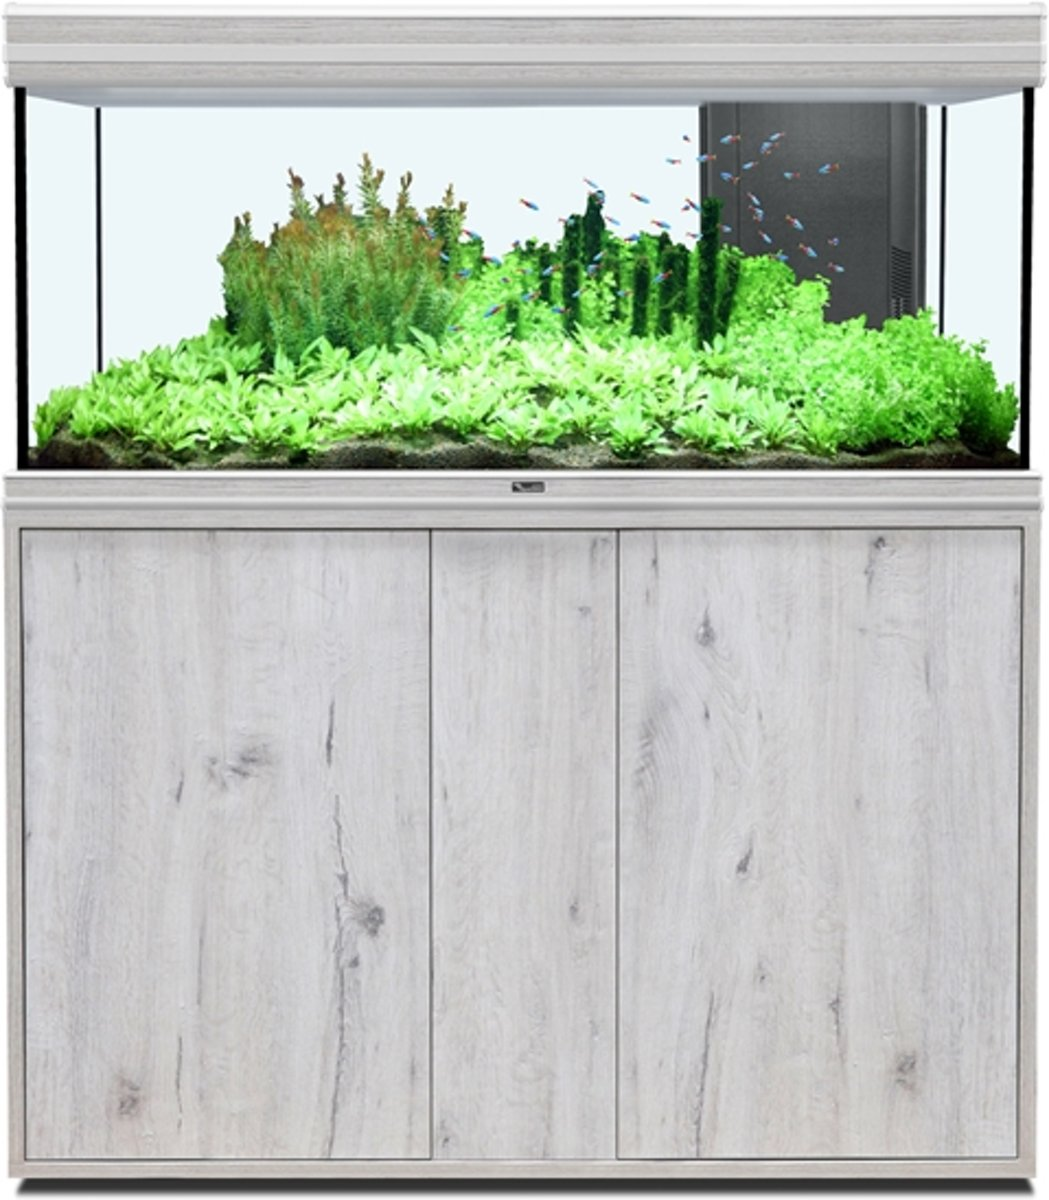 Aquatlantis Easy Led Verlichting Aquatlantis Fusion 120 Whitewash Aquarium 40mm Meubel 120x40x60 Cm 224l